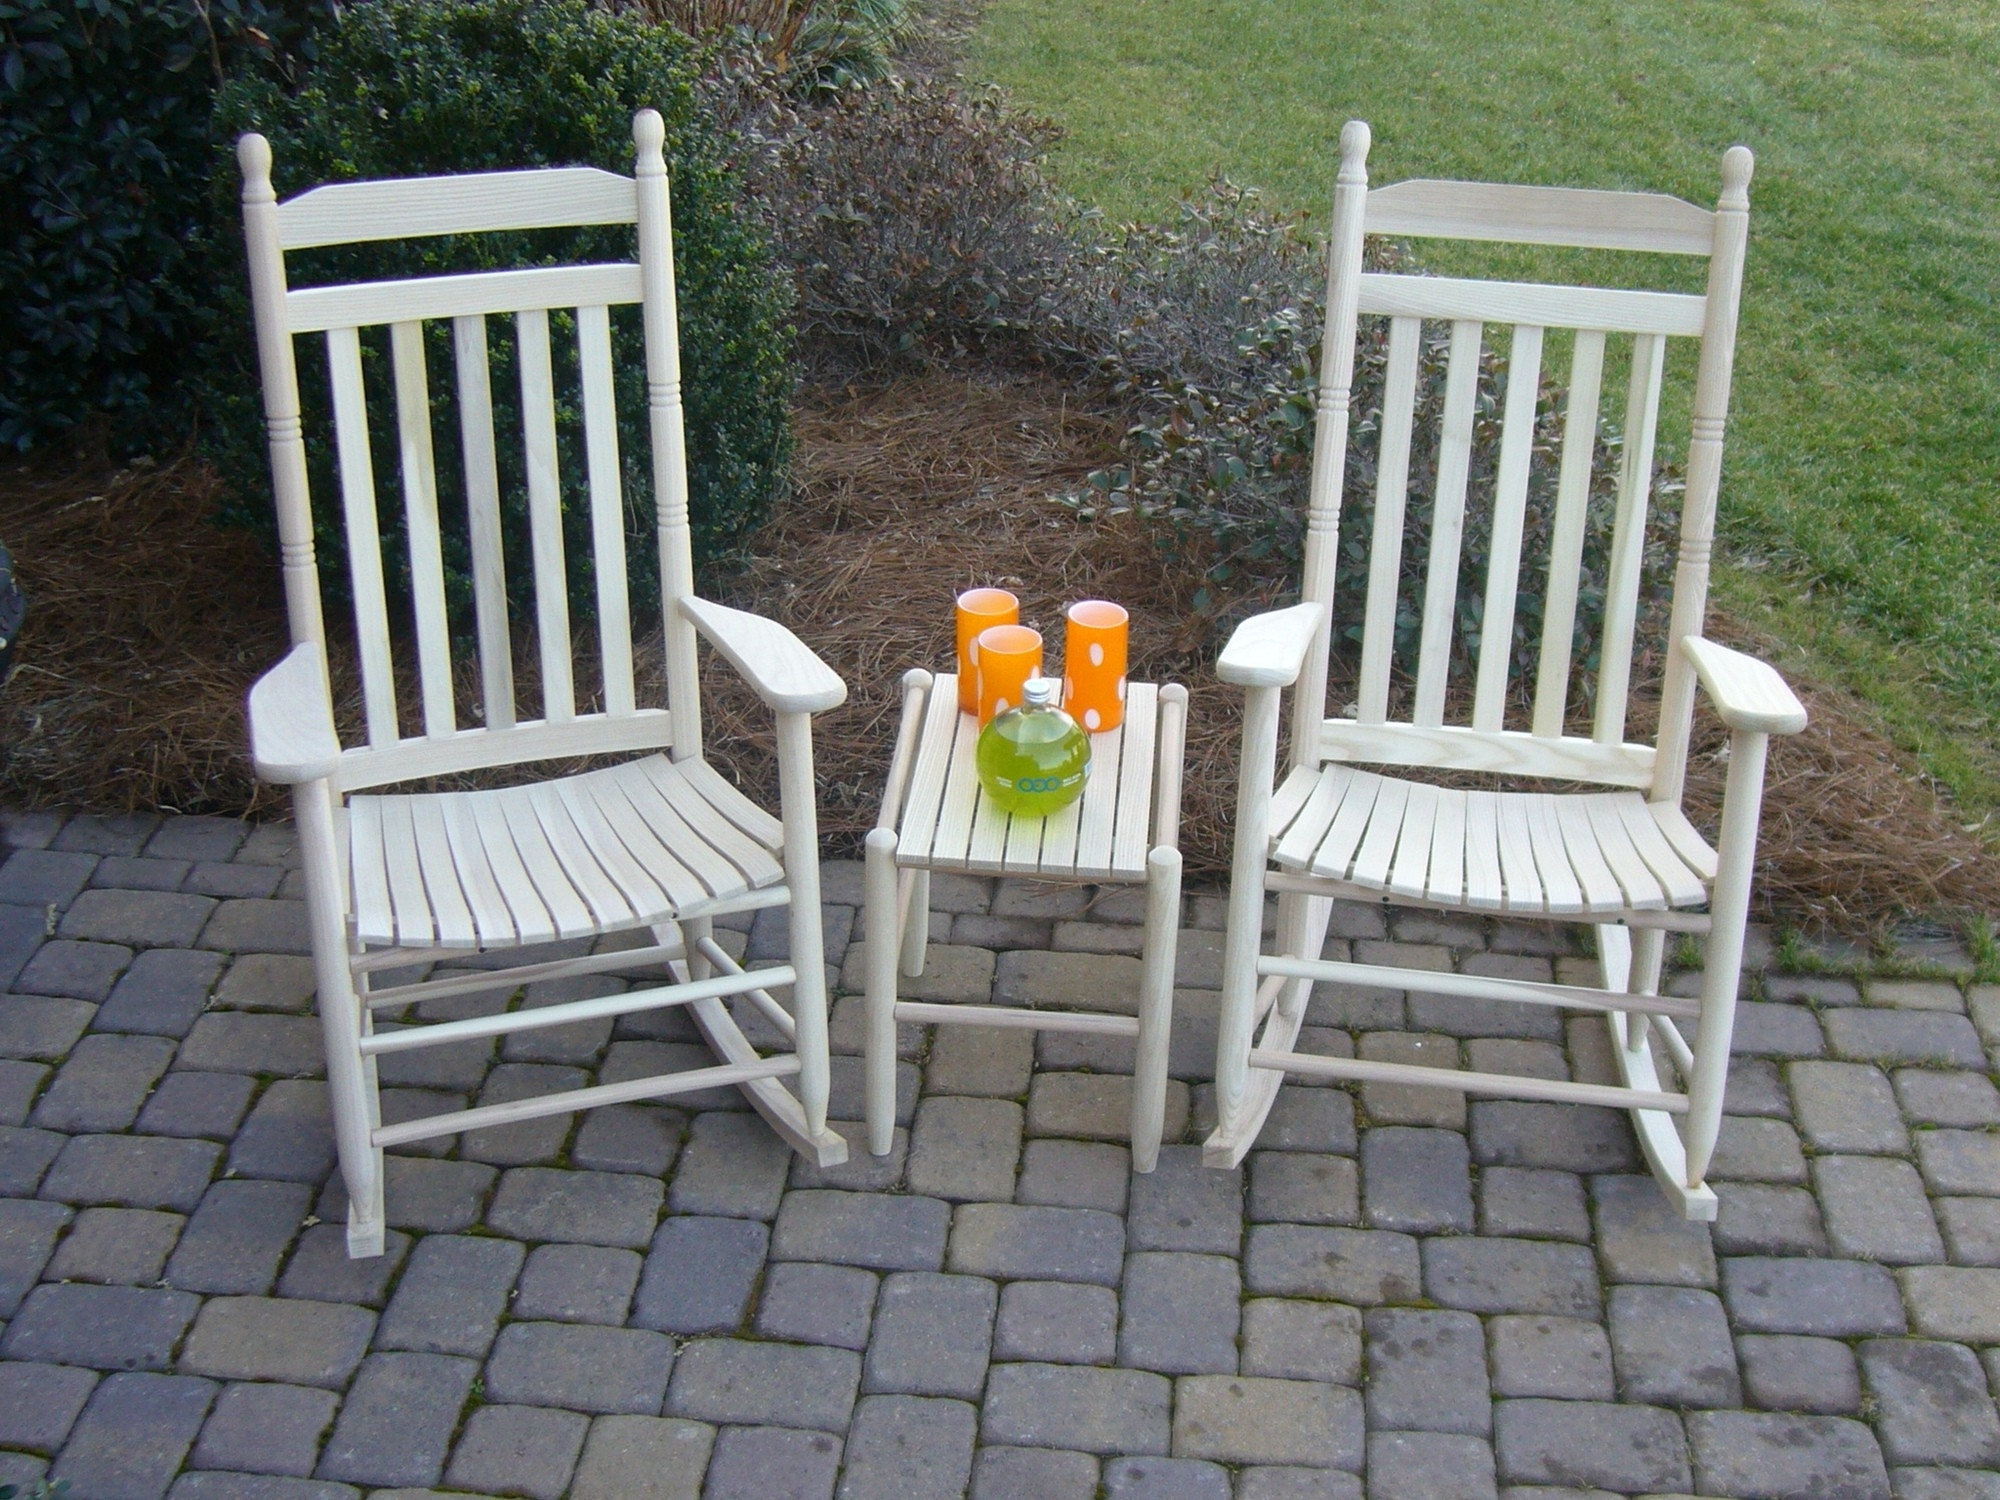 Preferred Outdoor Rocking Chairs With Table Throughout Extraordinary Porch Table And Chairs Inspirational Furniture Outdoor (View 15 of 20)